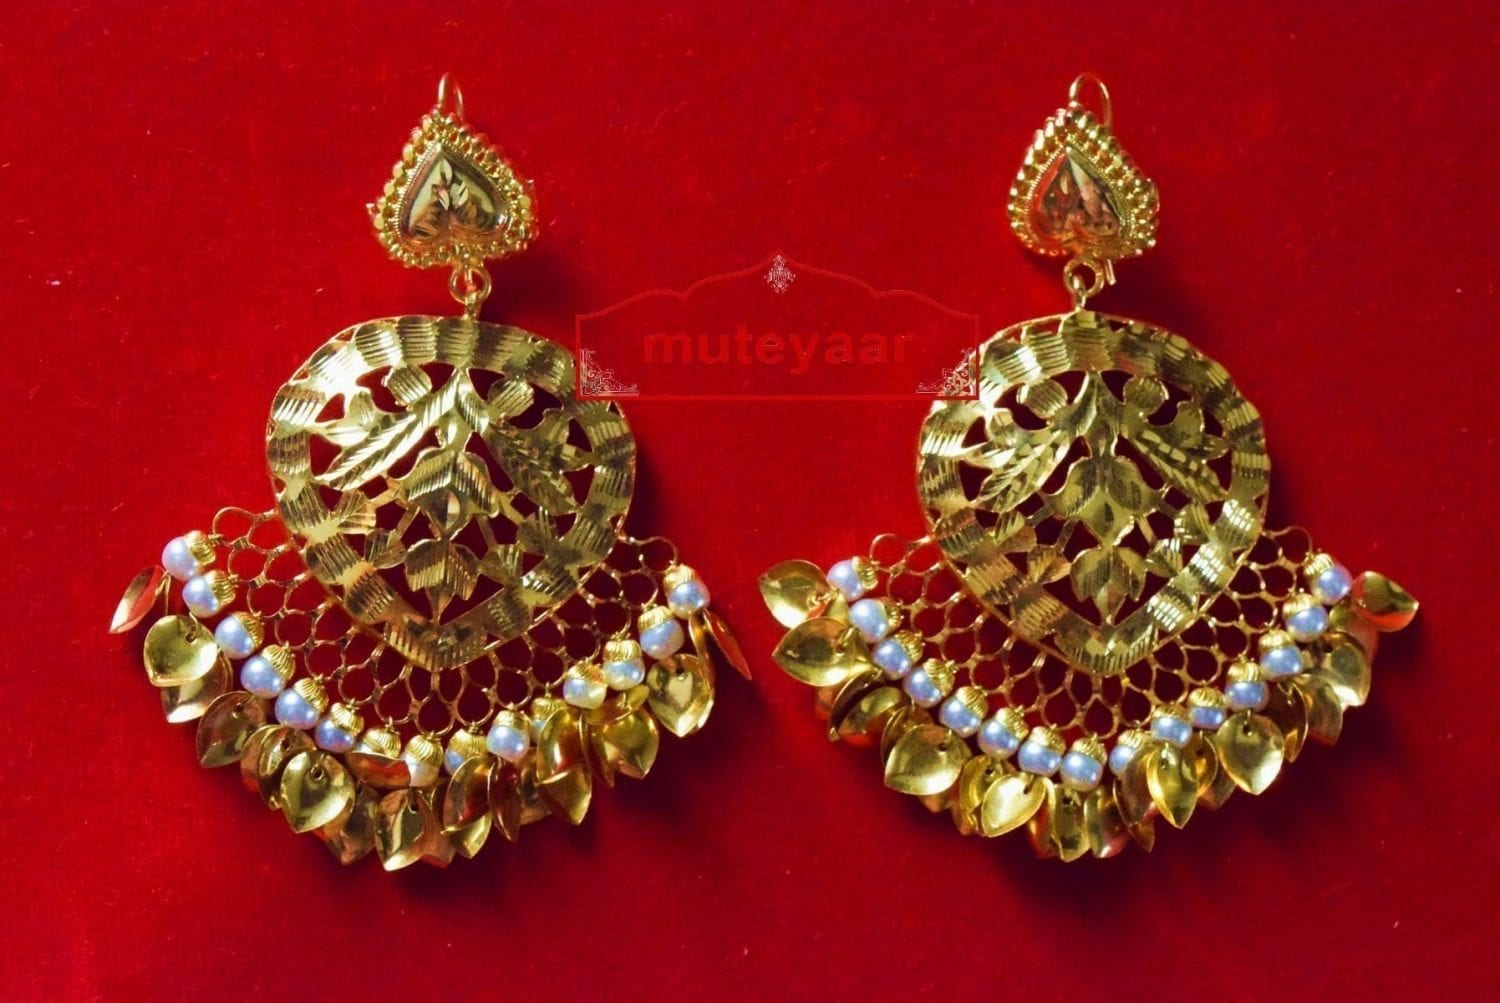 Hand Made 24 ct. Gold Plated Traditional Punjabi Jewellery Earrings Jhumka J0372 2